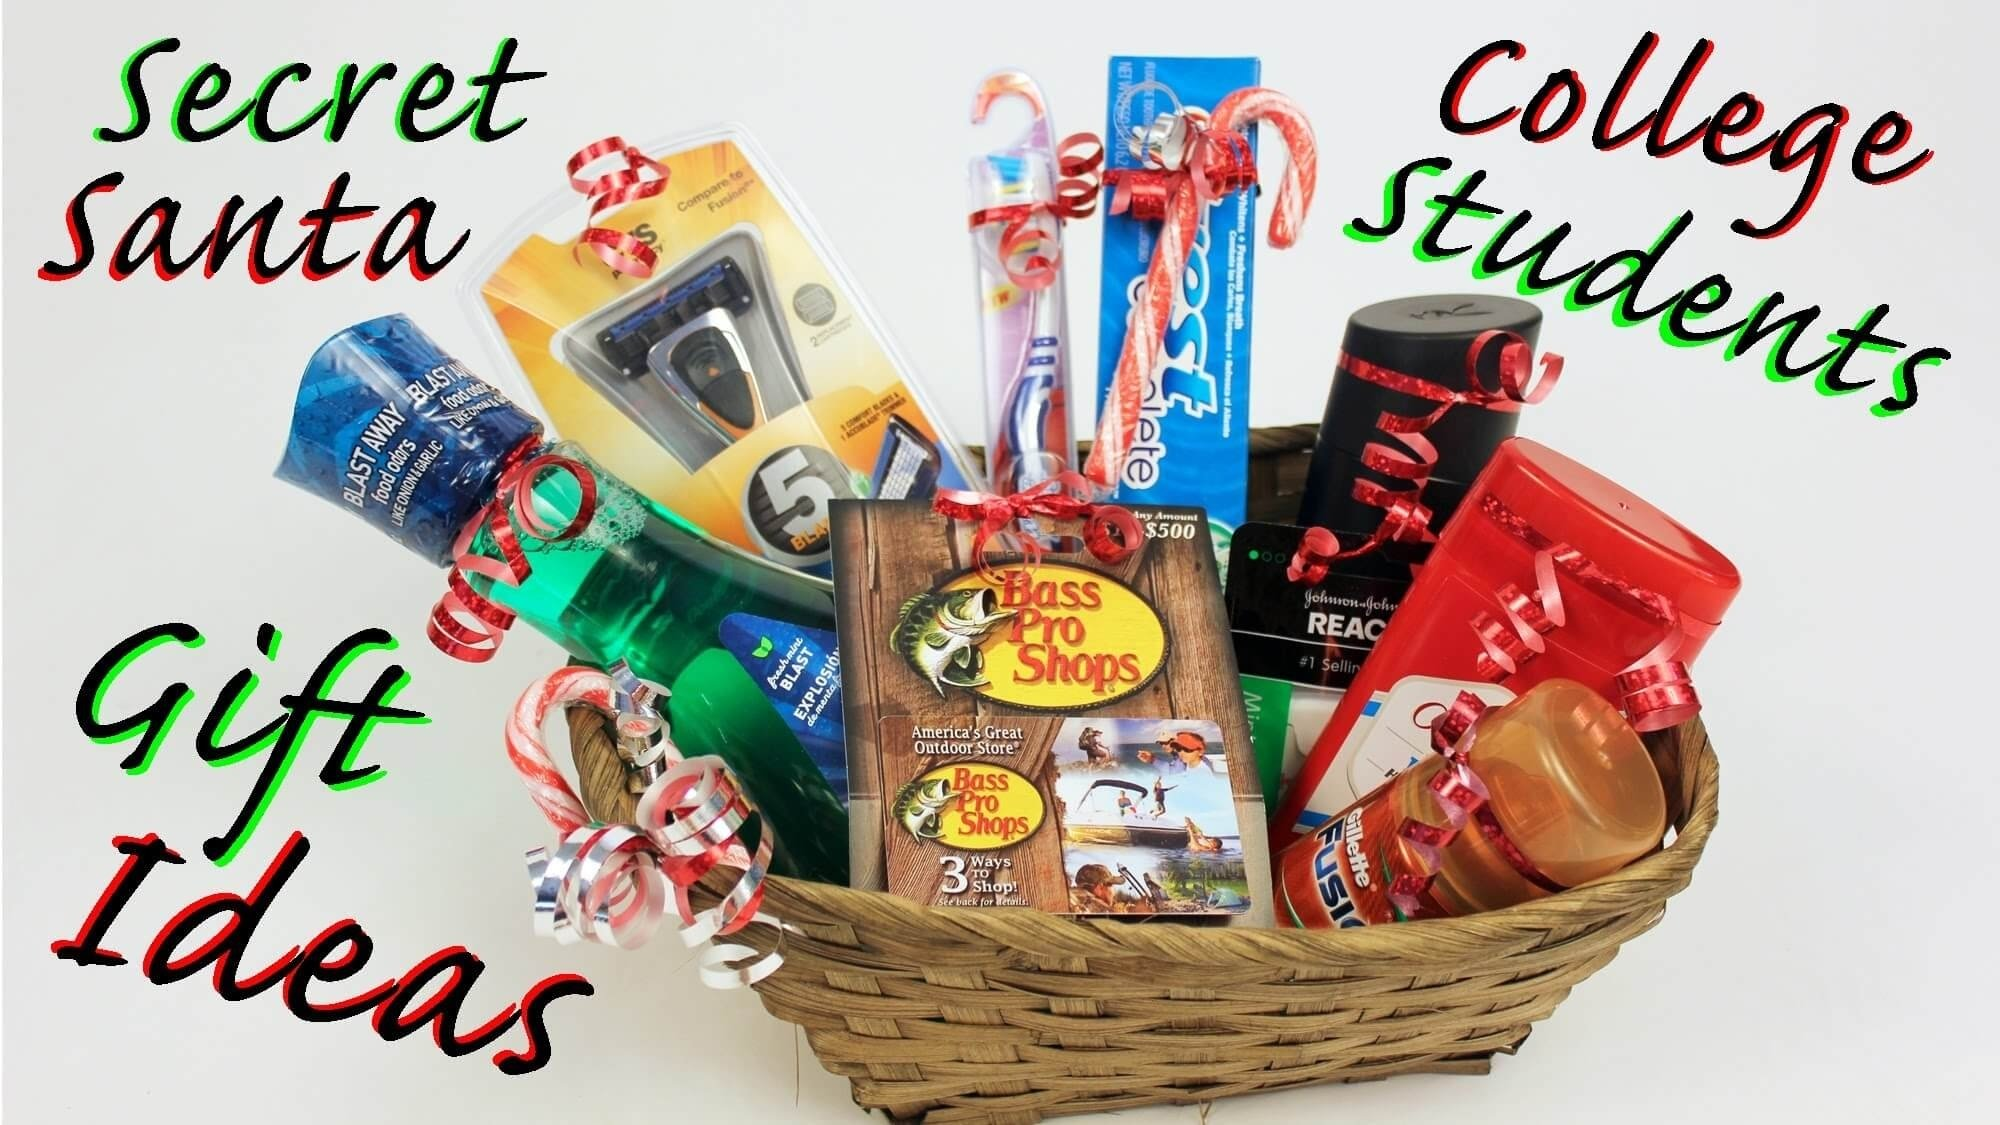 10 Attractive Gift Ideas For College Students college student gift ideas university magazine 2020